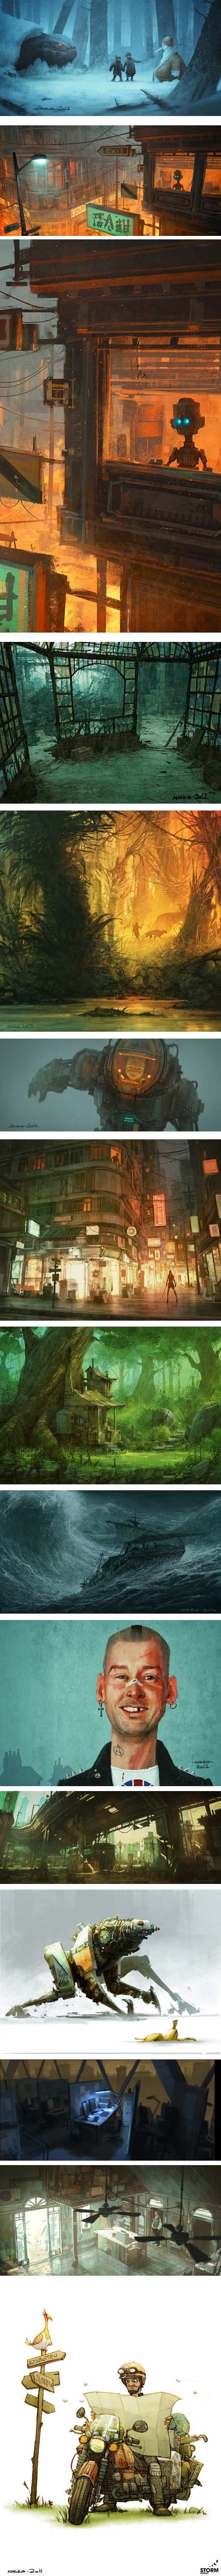 Nikolai Lockertsen, Nikko, art director an visual development artist, Norway                                                                                                                                                                                 More